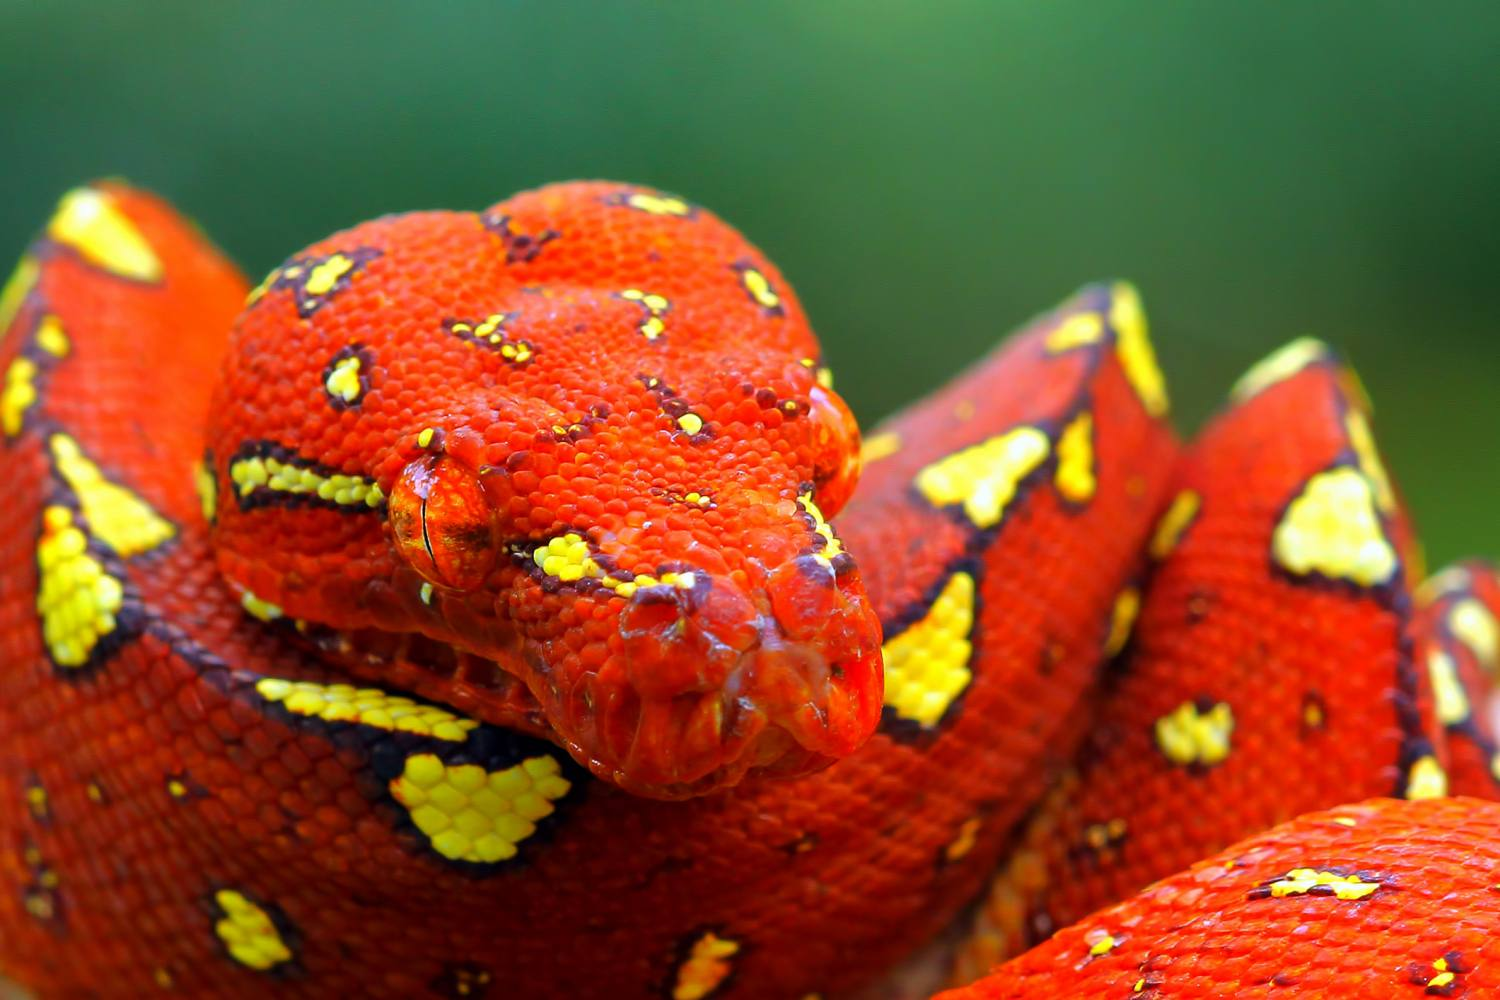 Red Python Snake Coiled Indonesia Kuritafsheen Room Getty Images